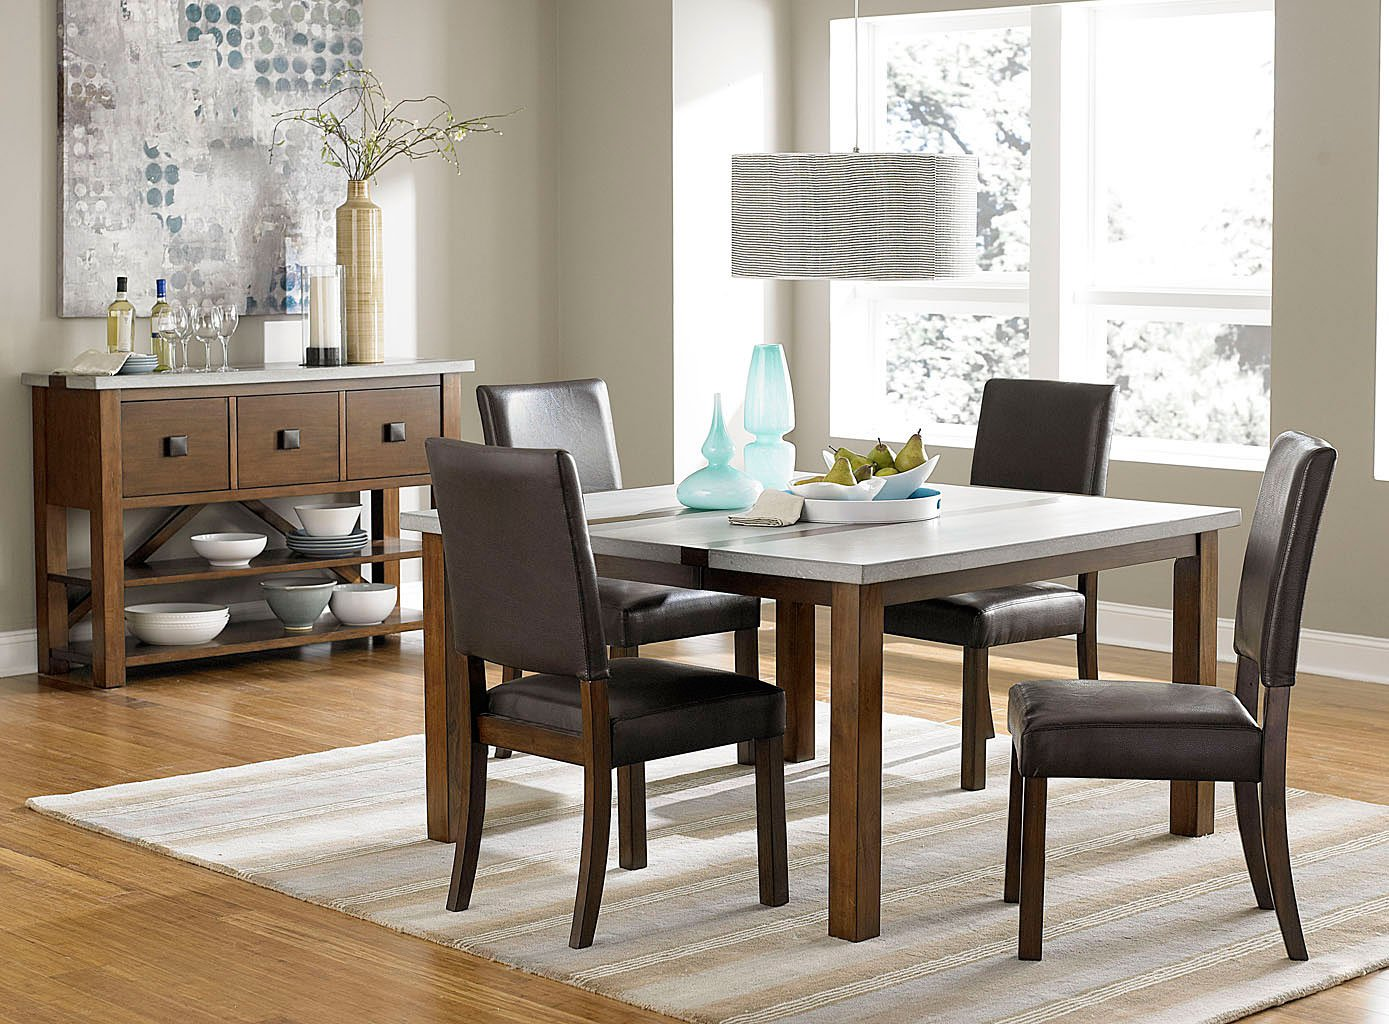 Cascade Dining Room Set W Upholstered Chairs Progressive Furniture Furniture Cart